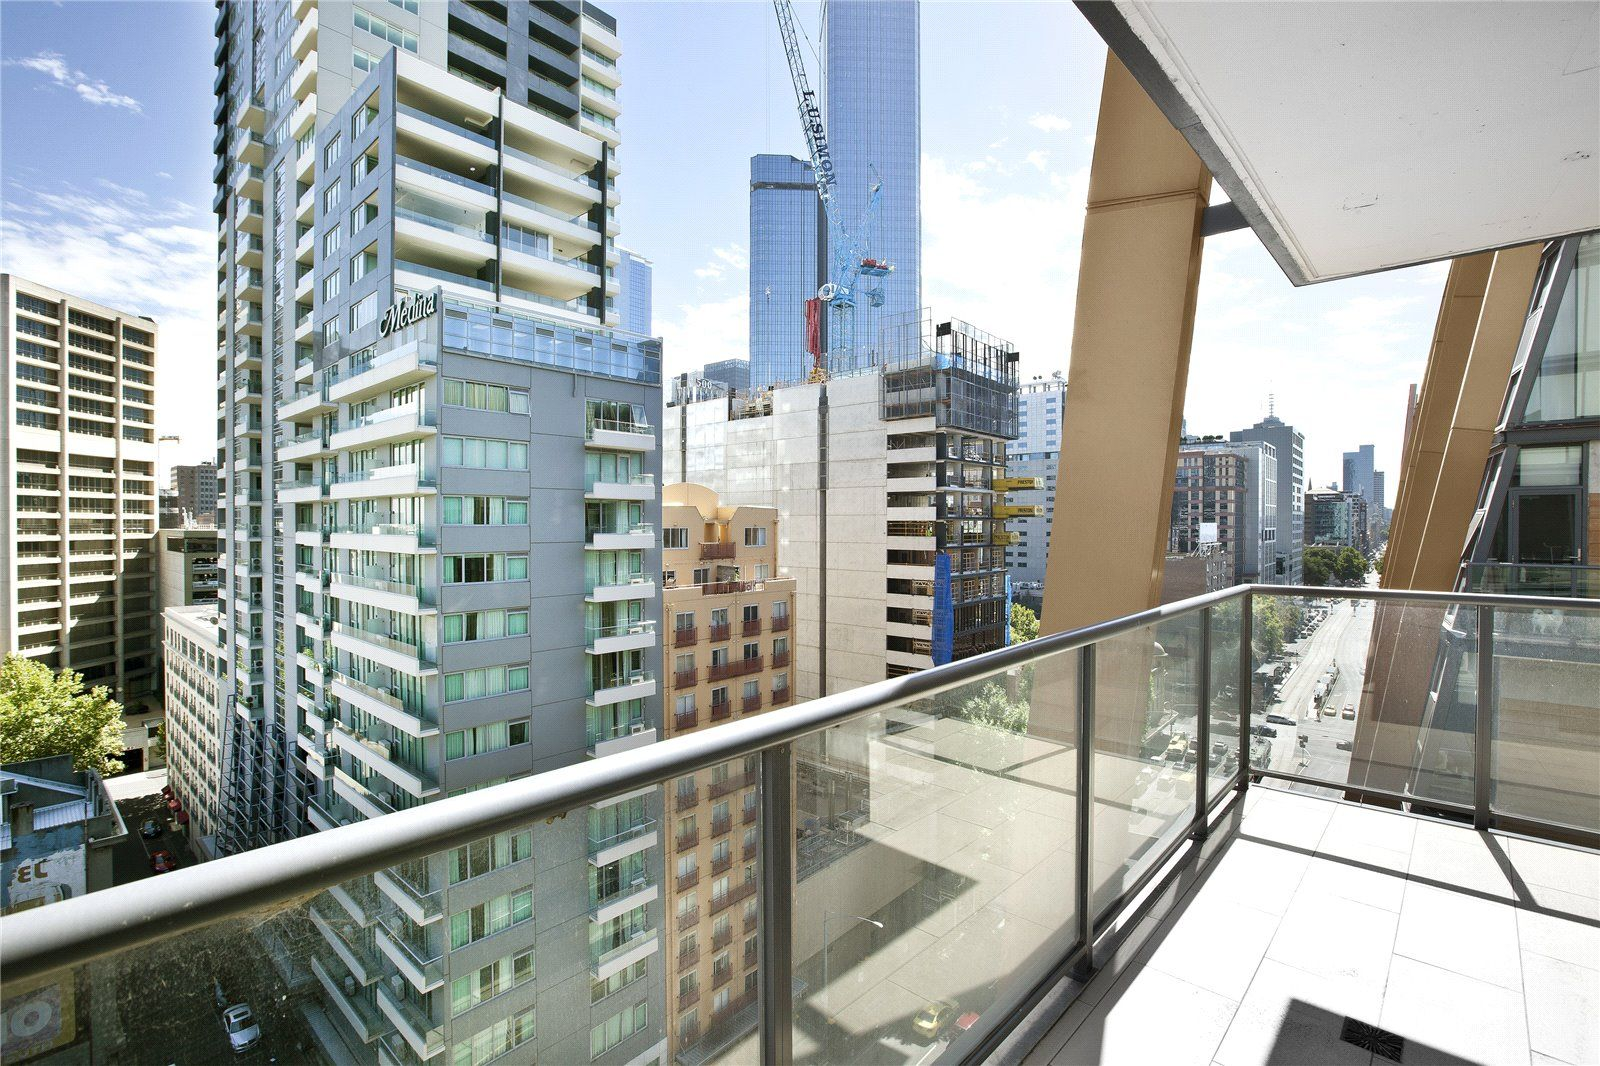 Northbank: 565 Flinders St - Live The High Life!